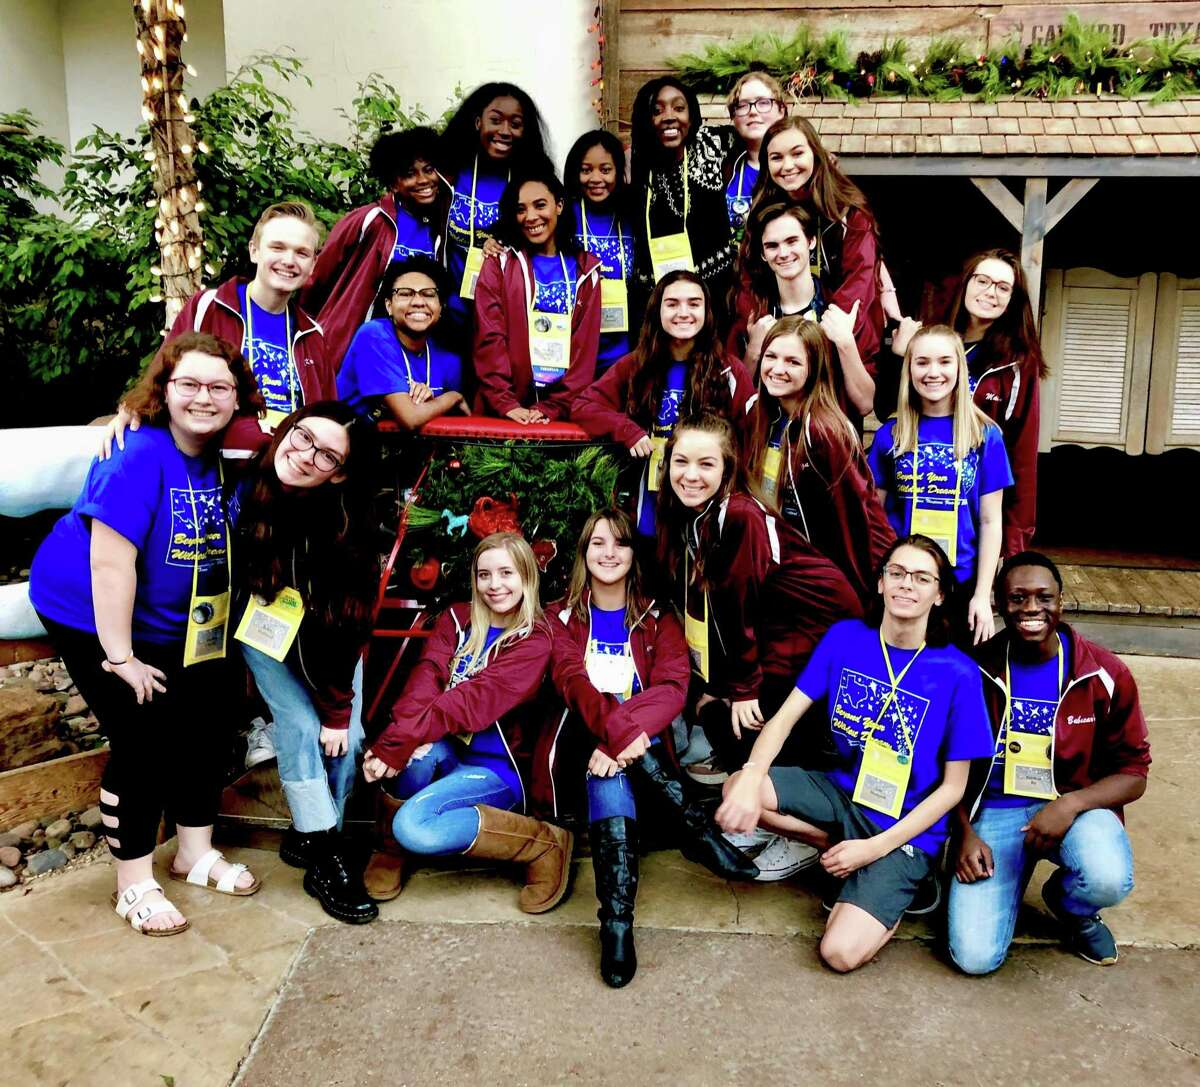 Twenty-two George Ranch Theatre students (the most in school history) earned the highest rating of 'Superior' to qualify for the International Thespian Festival. The Festival will be held June 24-29 in Lincoln, Nebraska.